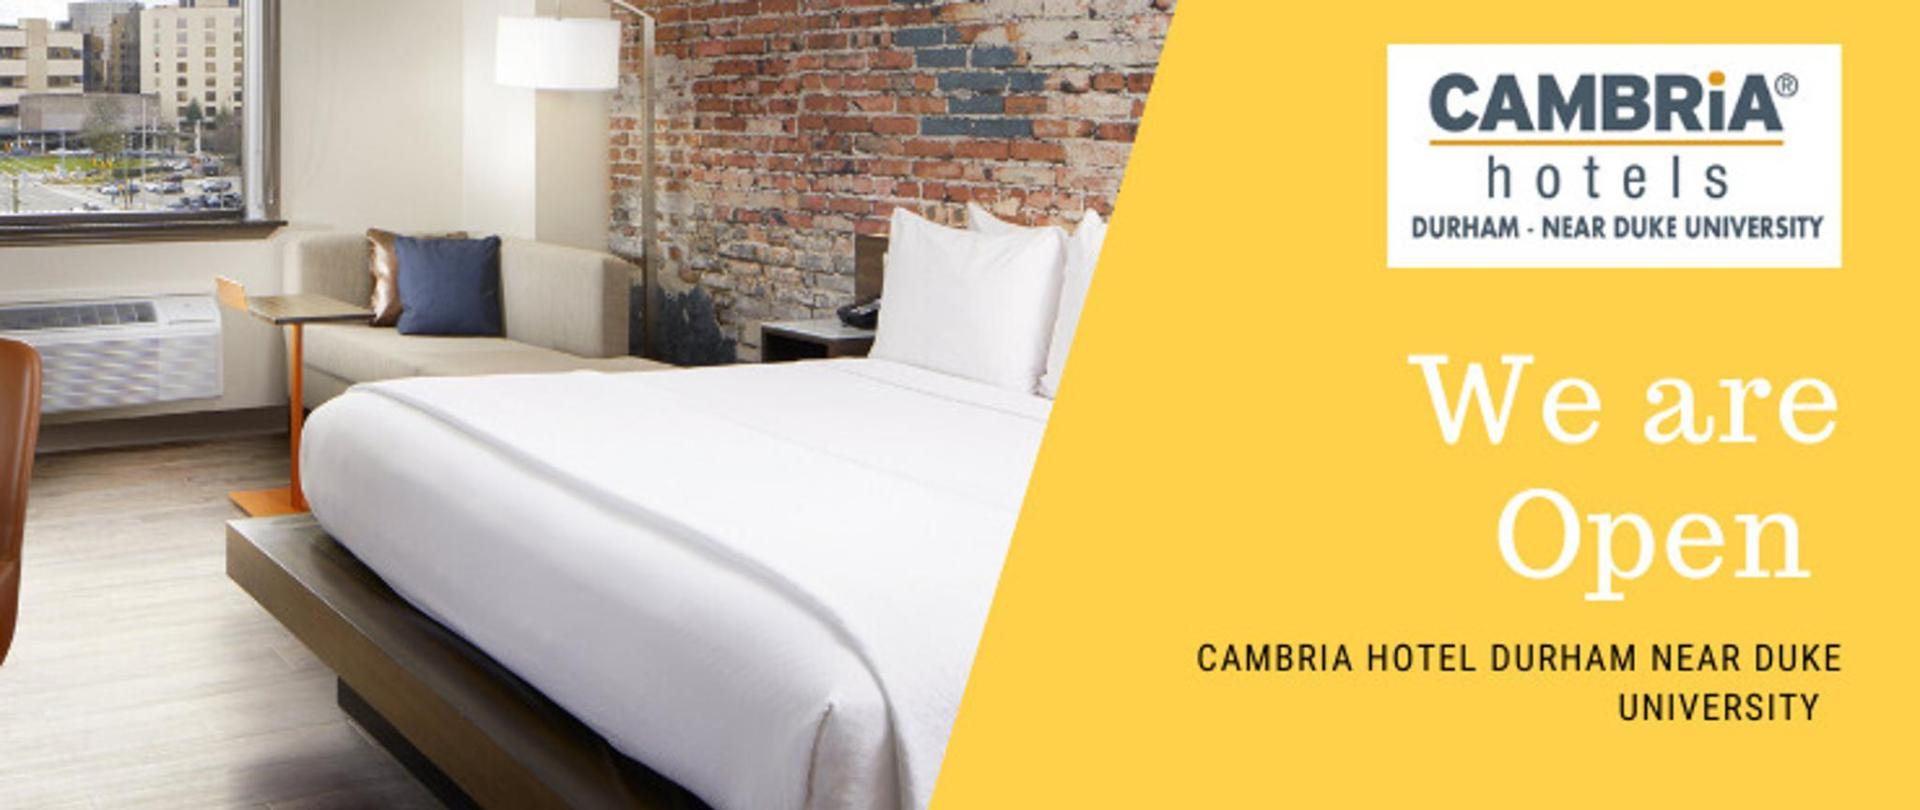 Cambria Hotel Durham - Near Duke University-1.png